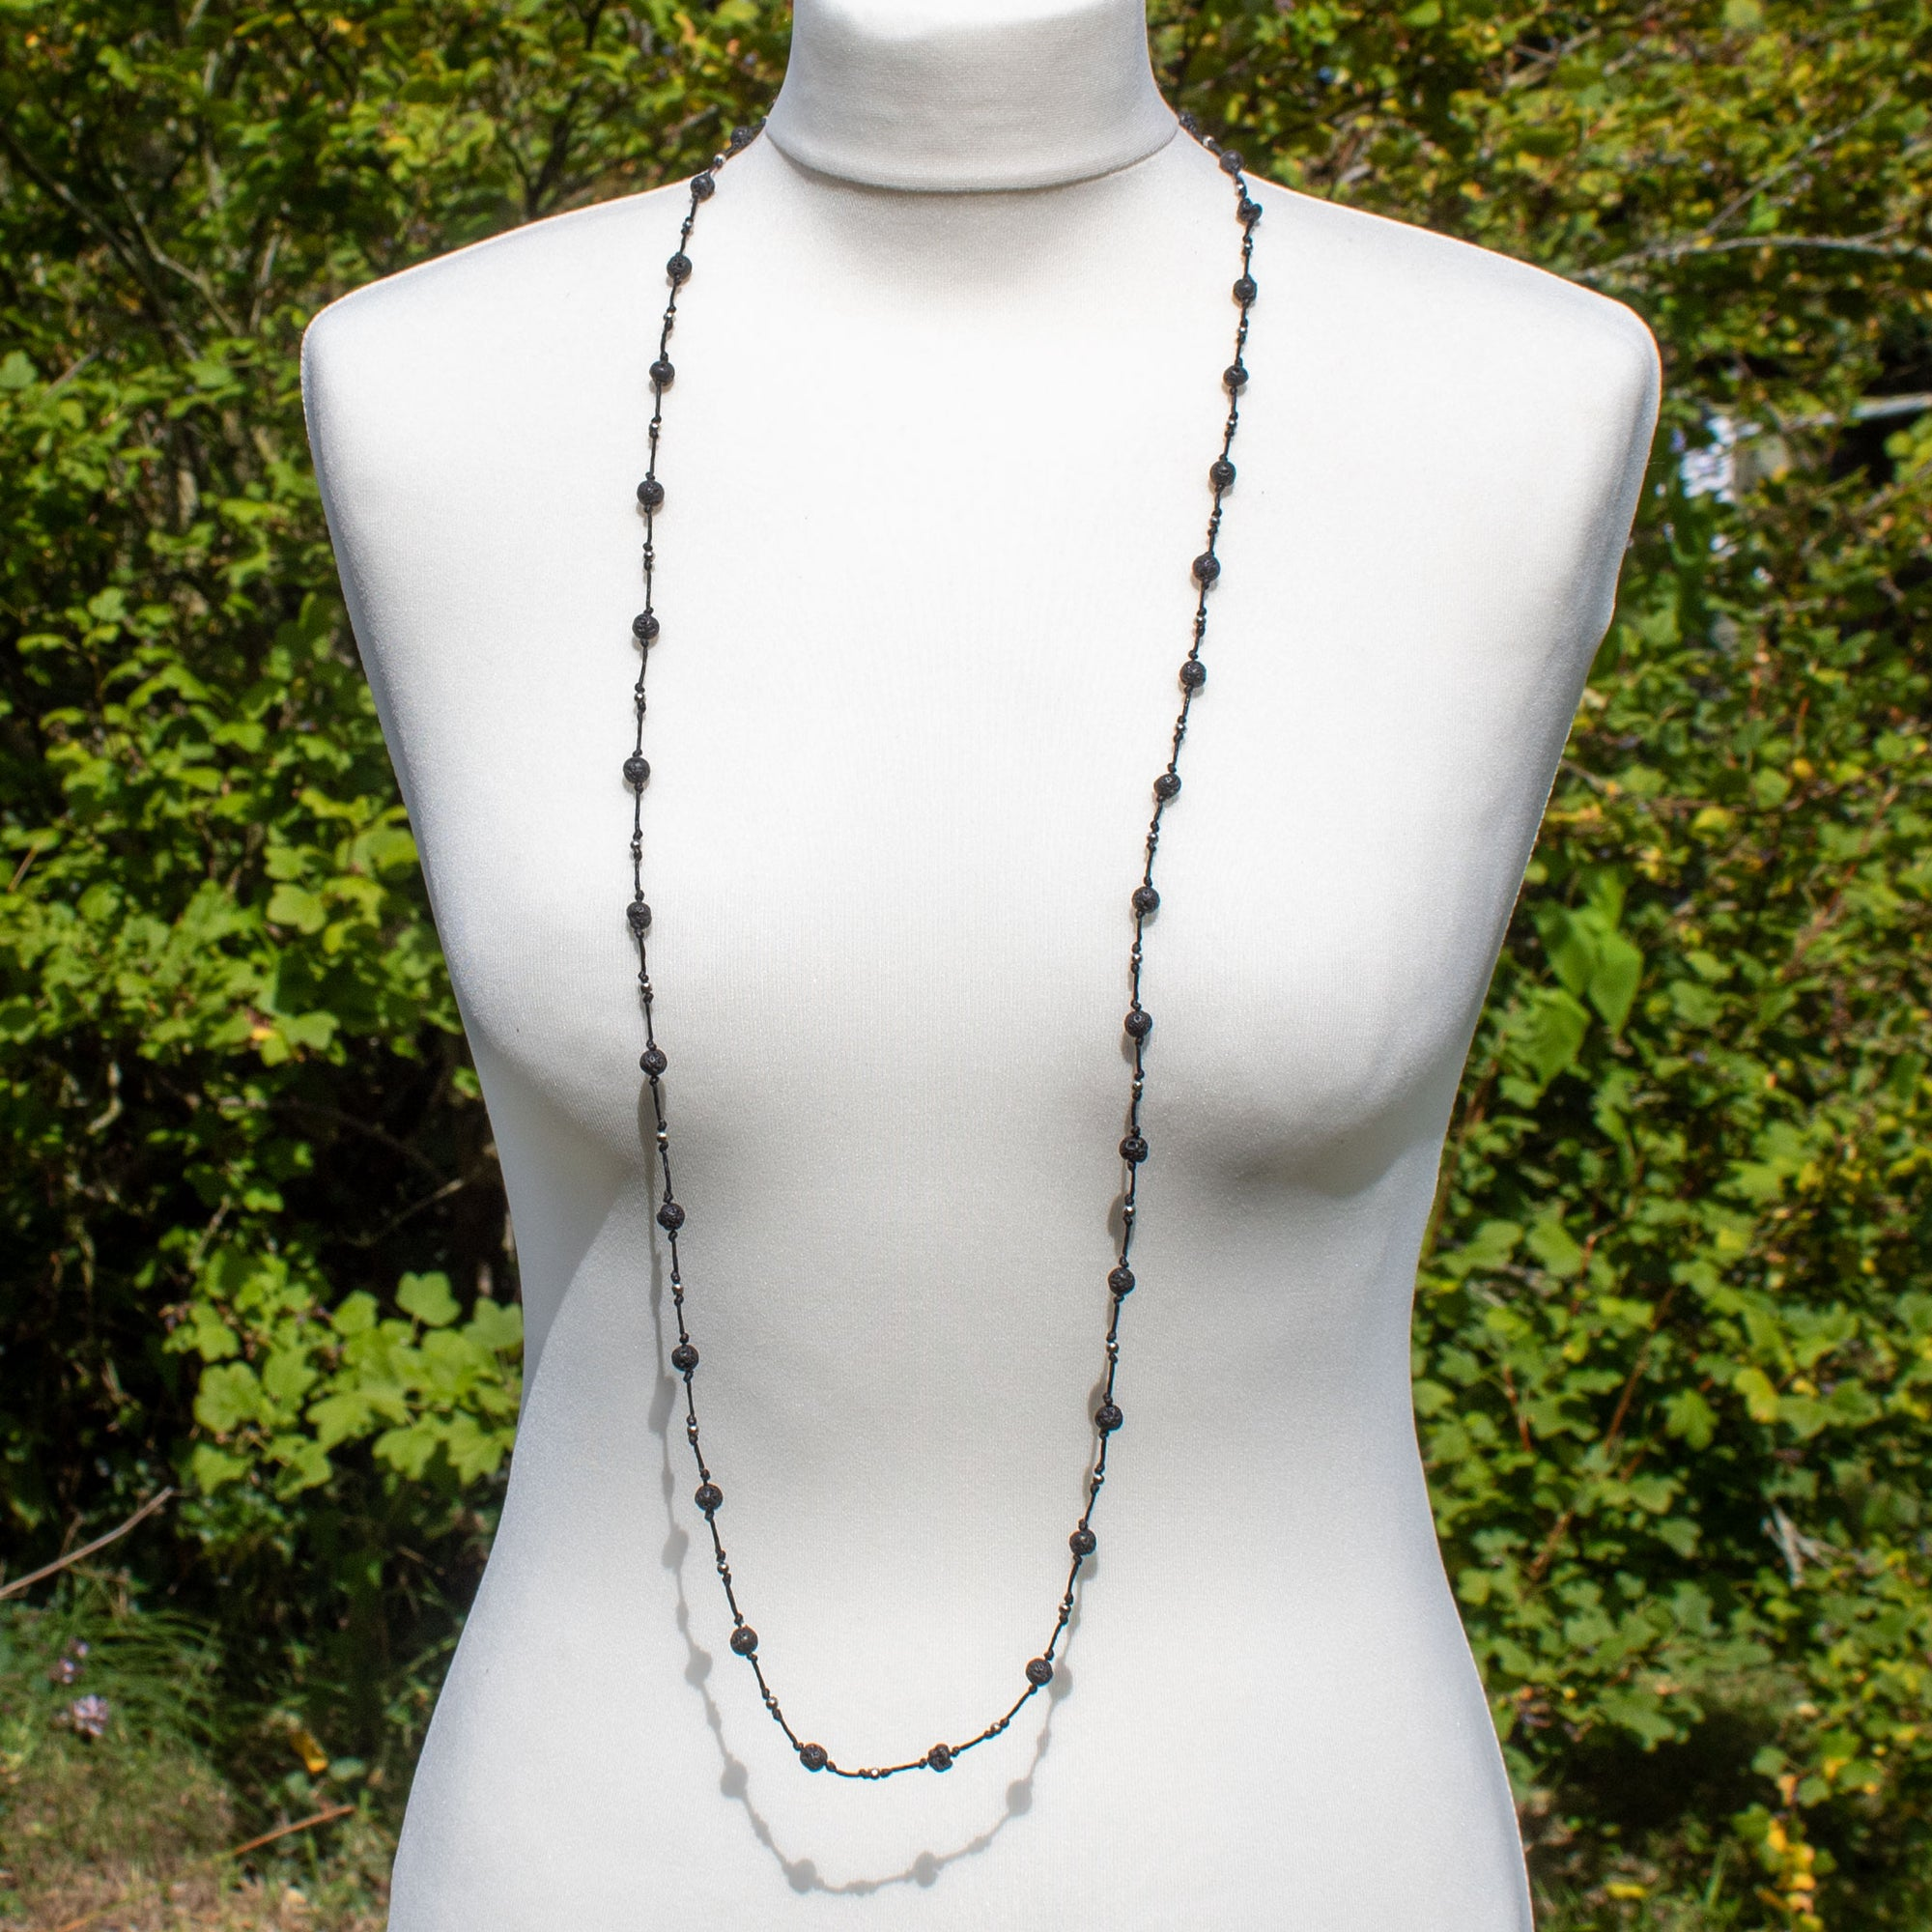 Long Lava Stone Bead Necklace | Necklace - The Naughty Shrew